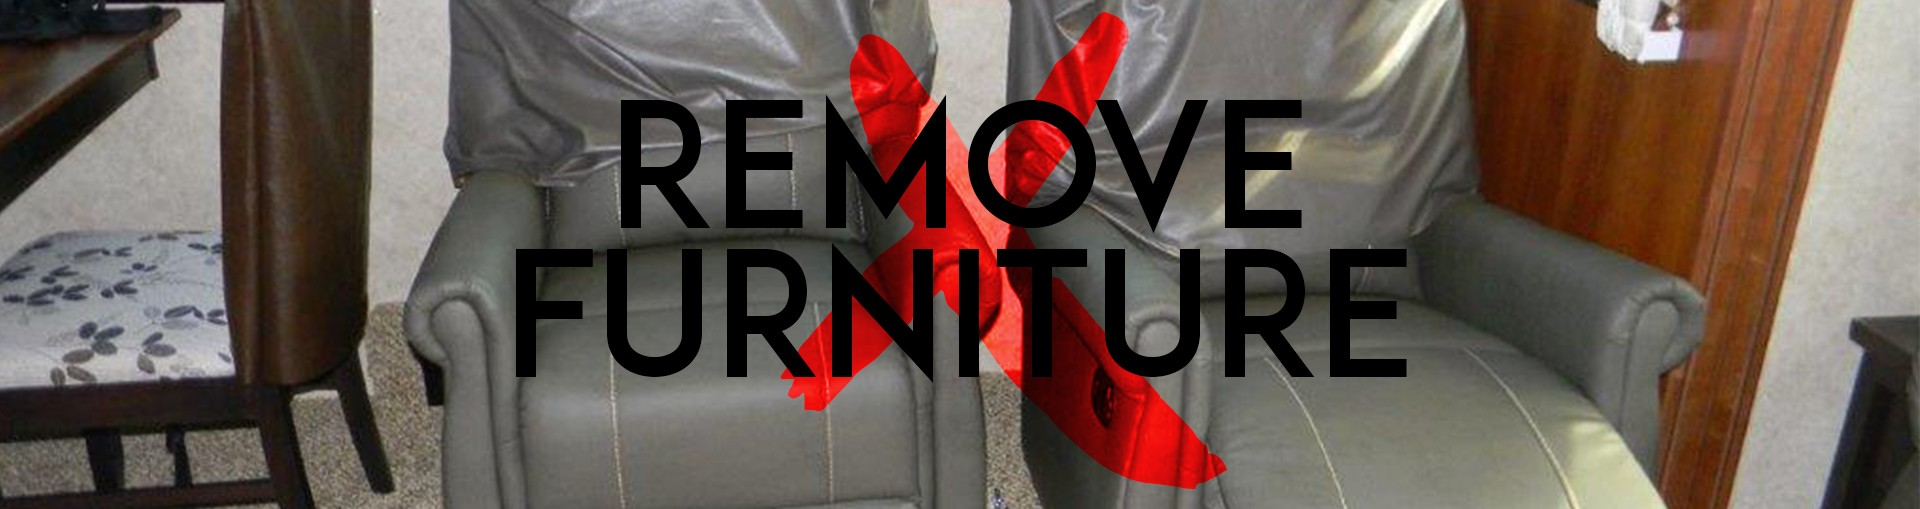 remove furniture